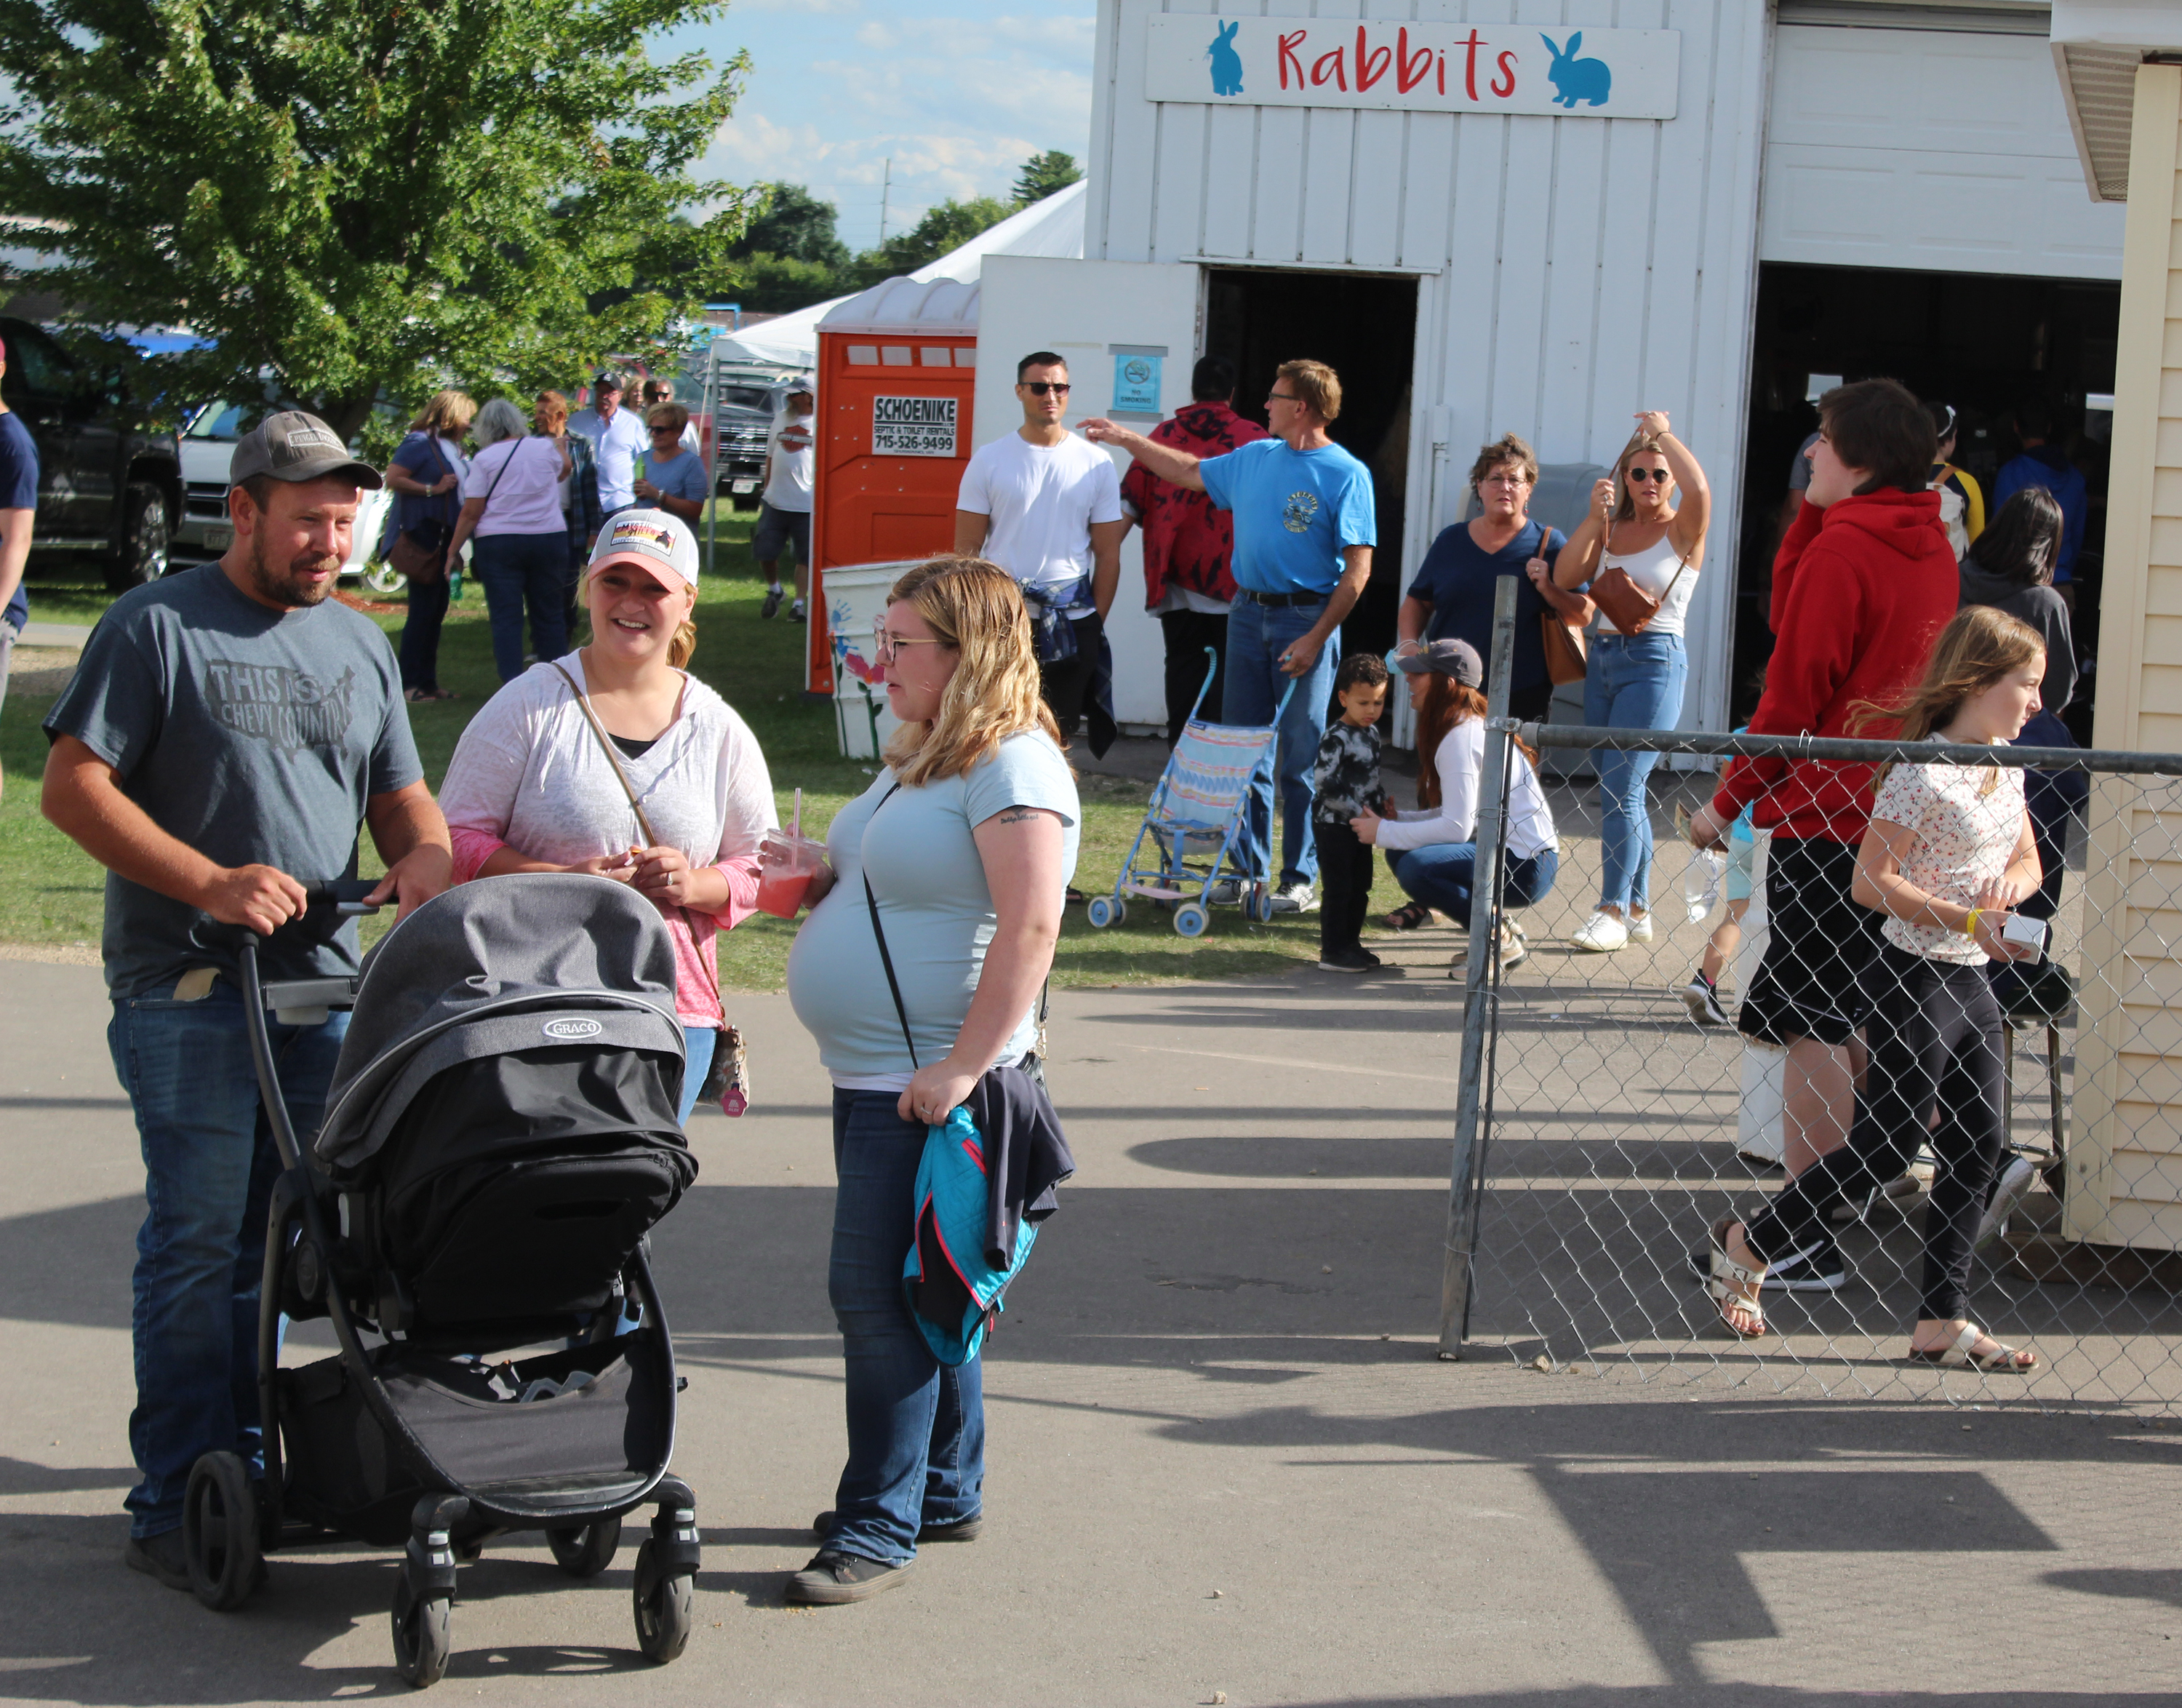 The Shawano County Fair was jam packed with people over the weekend, filling the barns and leaving few vacancies on carnival rides. Sunny weather with temperatures in the mid-70s helped bring thousands of people to the fairgrounds over the Labor Day holiday.<br />(Lee Pulaski   NEW Media)